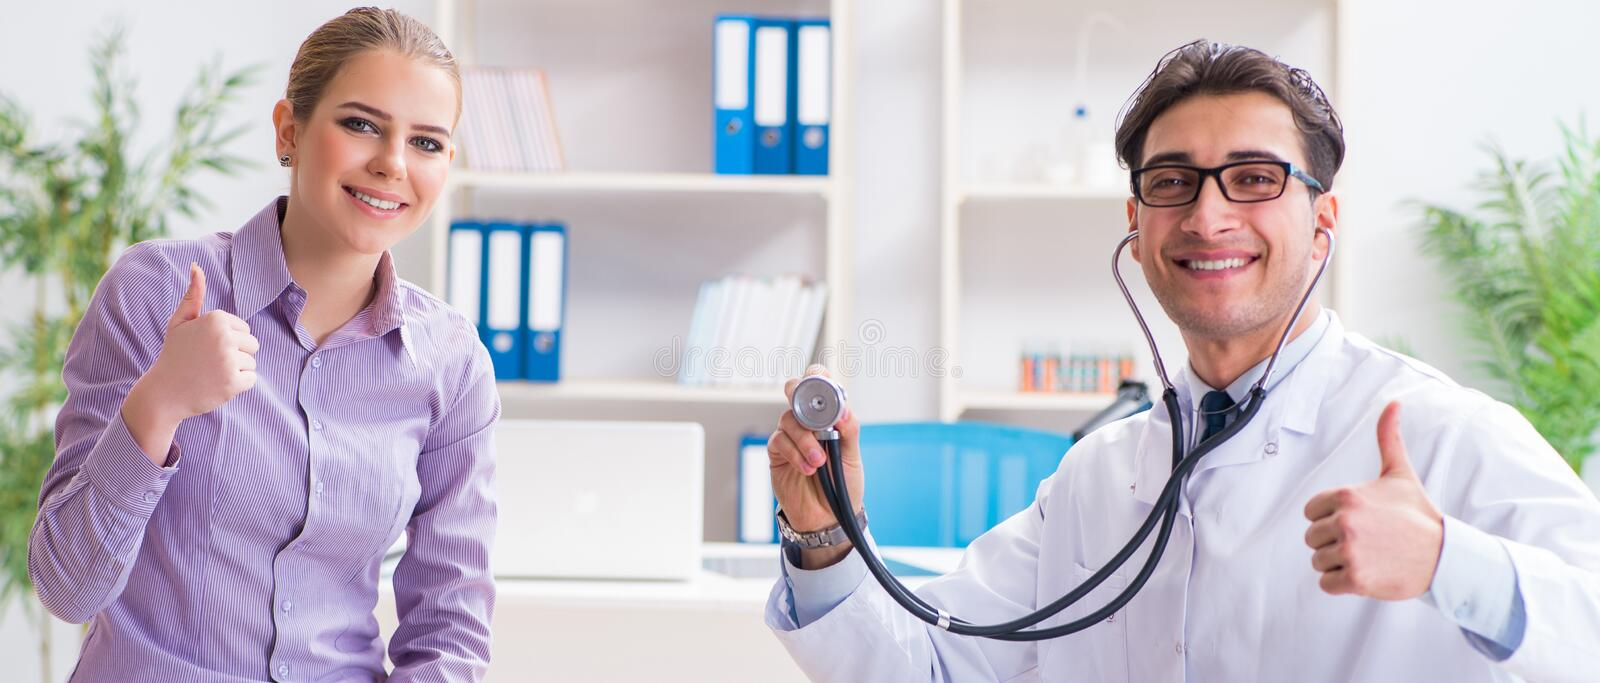 Patient visiting doctor for medical check-up in hospital stock photography